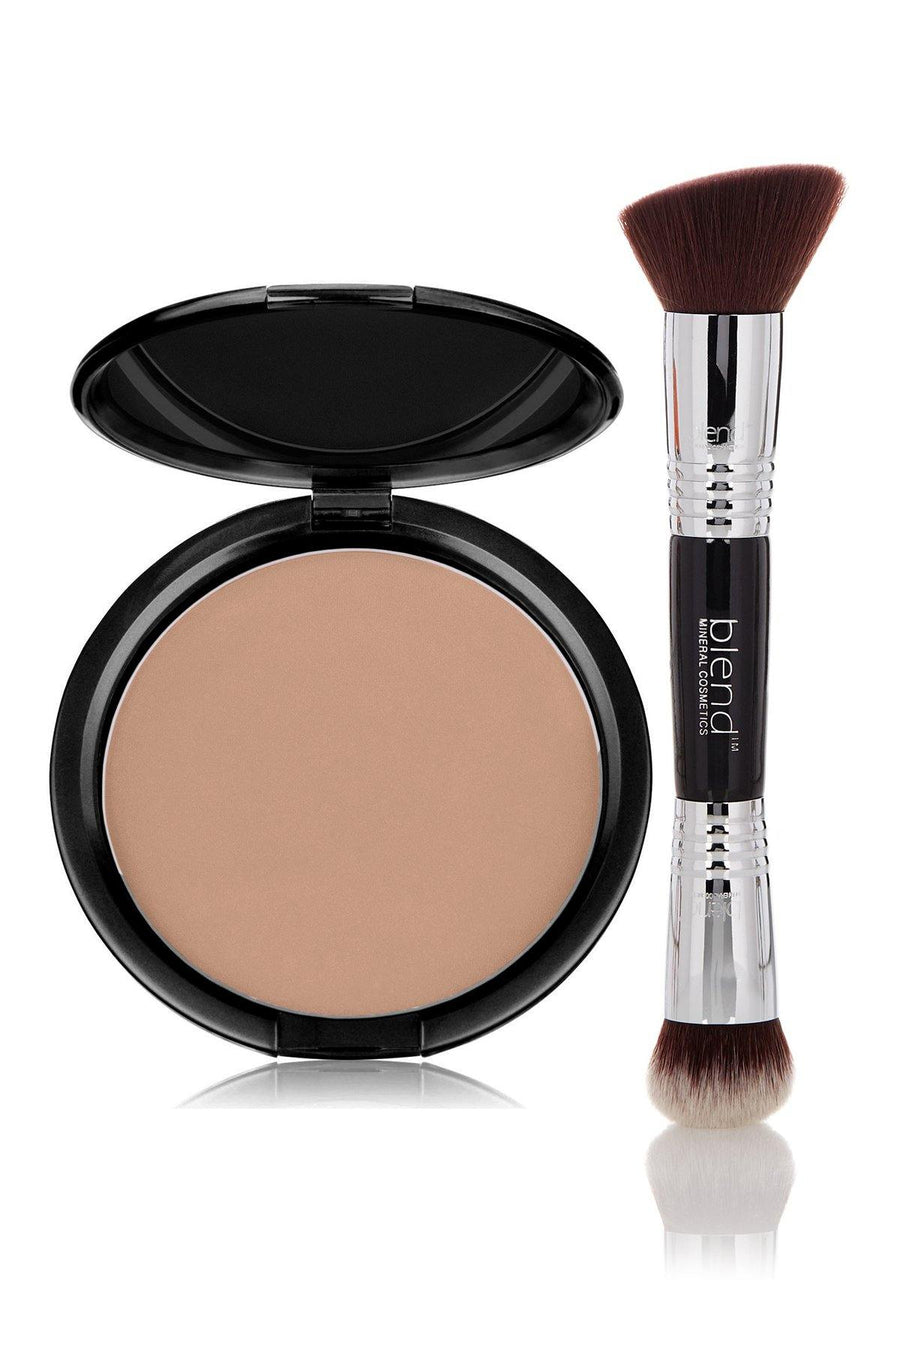 Foundation Pink Tone Medium Mineral Pressed Powder & Brush - Blend Mineral Cosmetics